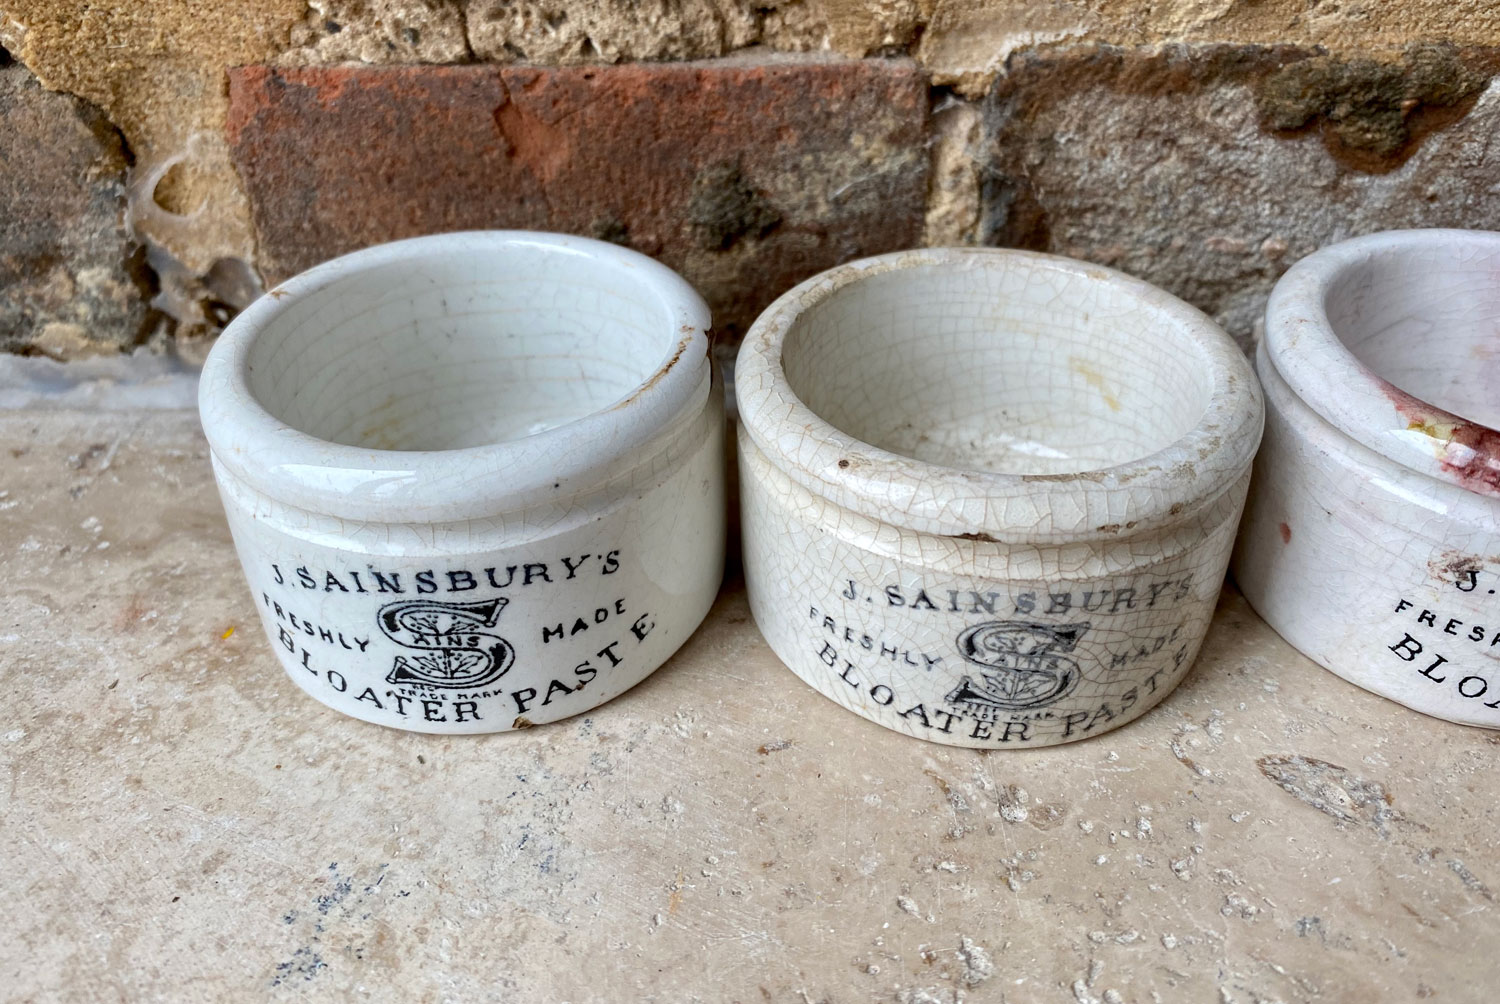 antique victorian white ironstone english advertising pot j sainsburys shallow bloater paste potted meat